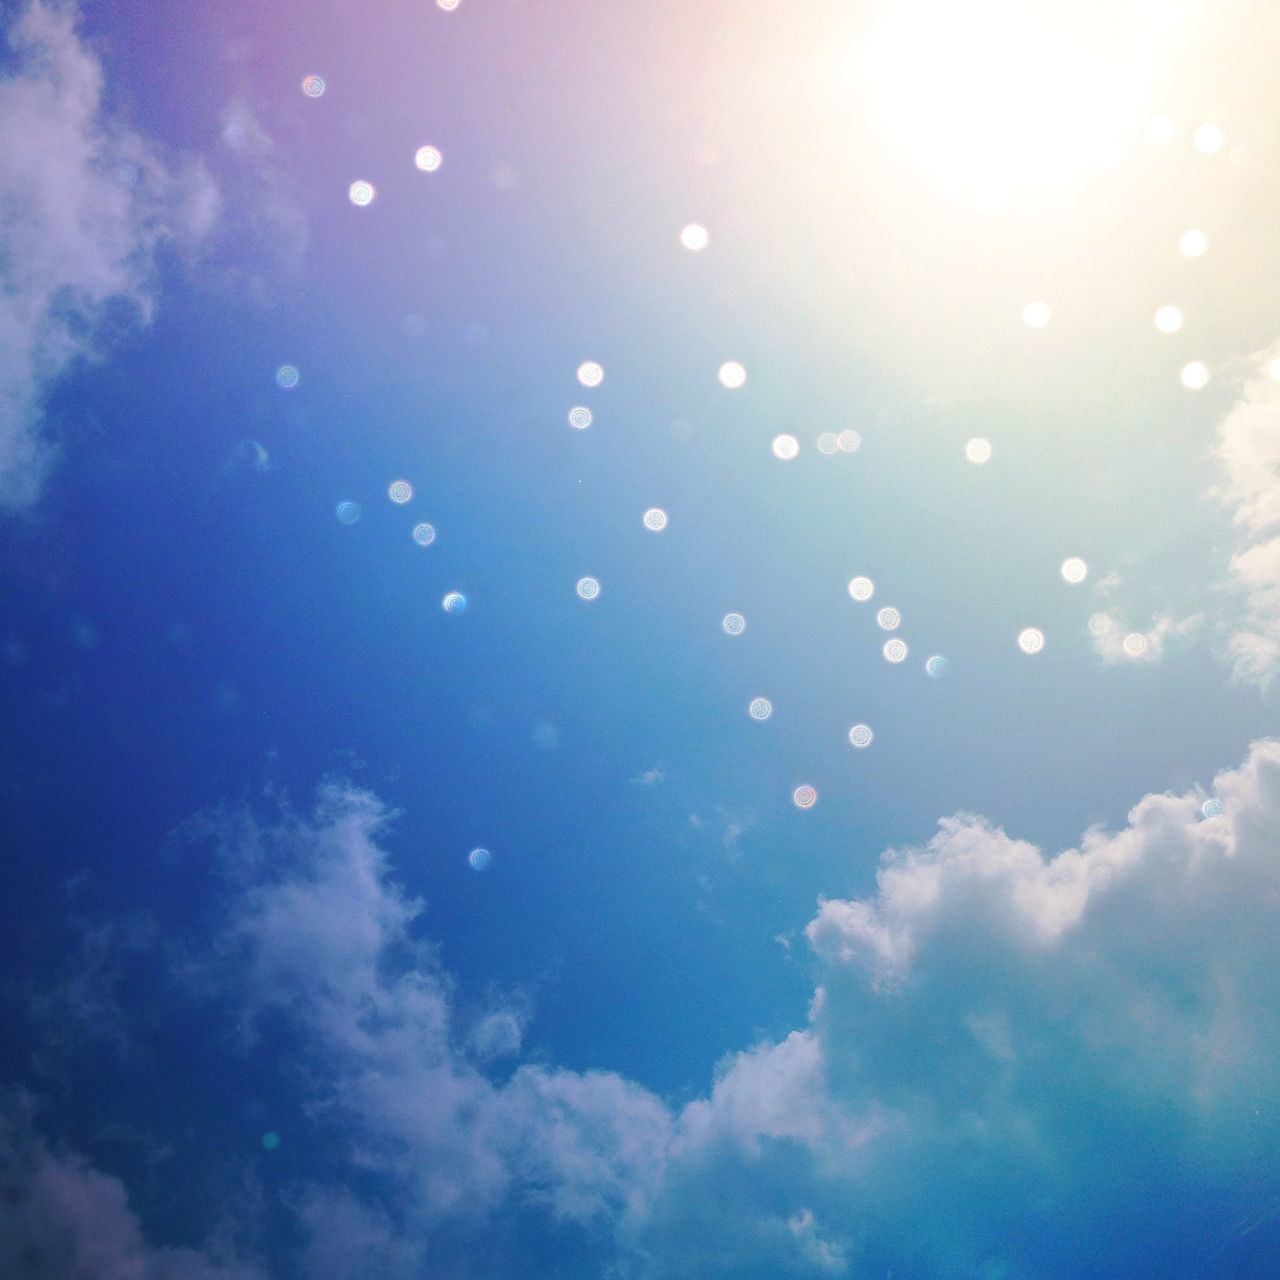 sunshine won't stop rain rain cannot hold back the sun such is life's balance. Atmosphere Blue Bokeh Clouds Copy Space Feel Alive Happiness Happy Lens Flare Light Look Up Nature Positive Mood Positivity Rain Serene Serenity Shiny Sky Sunshine Weather